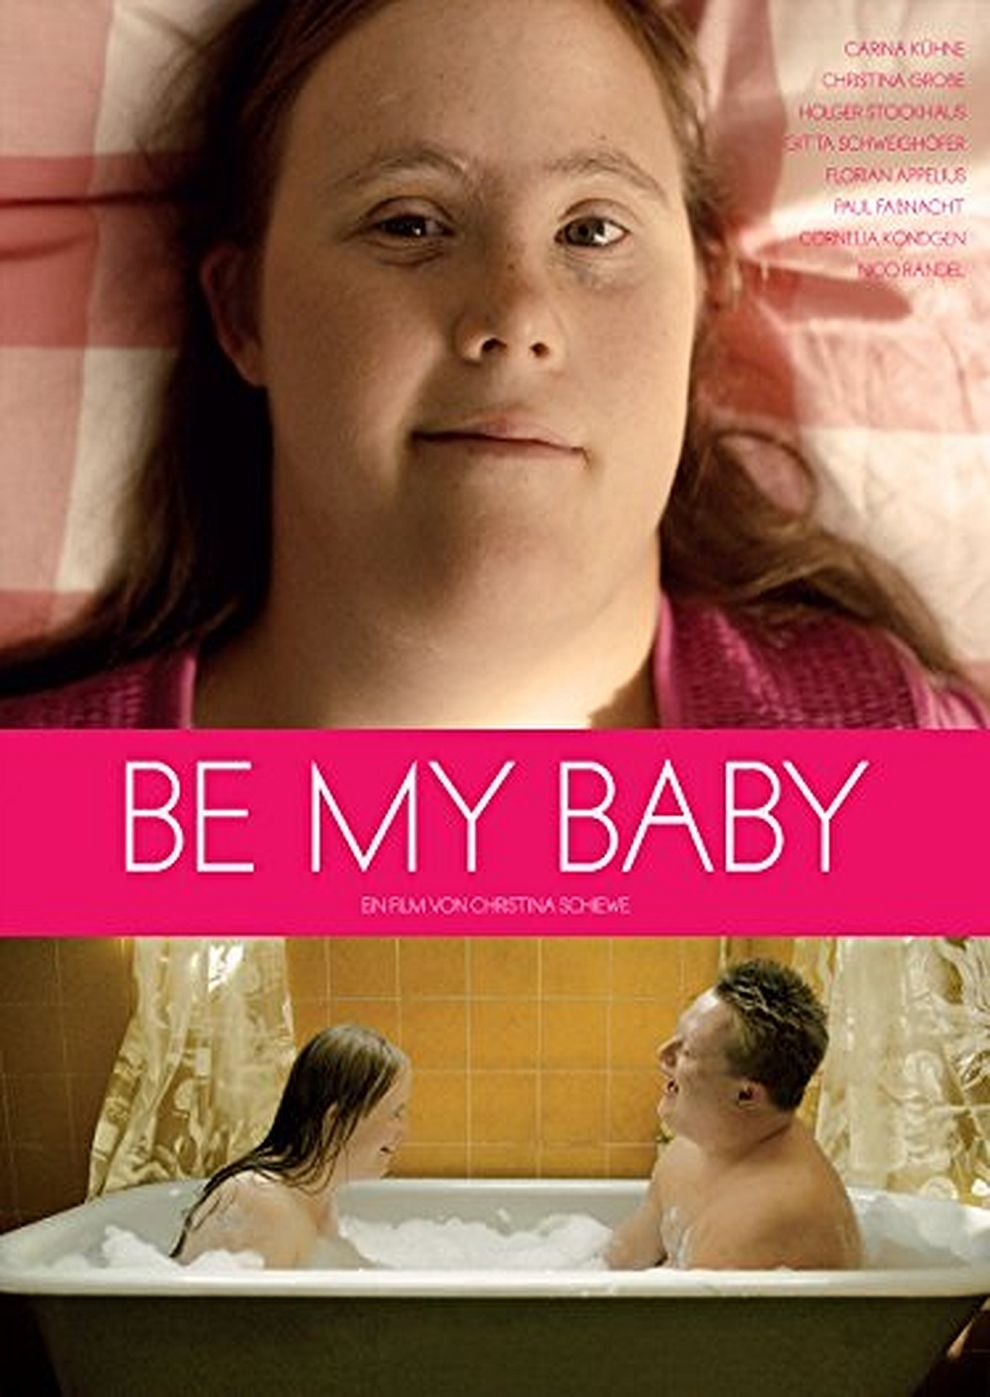 Be My Baby (Poster)